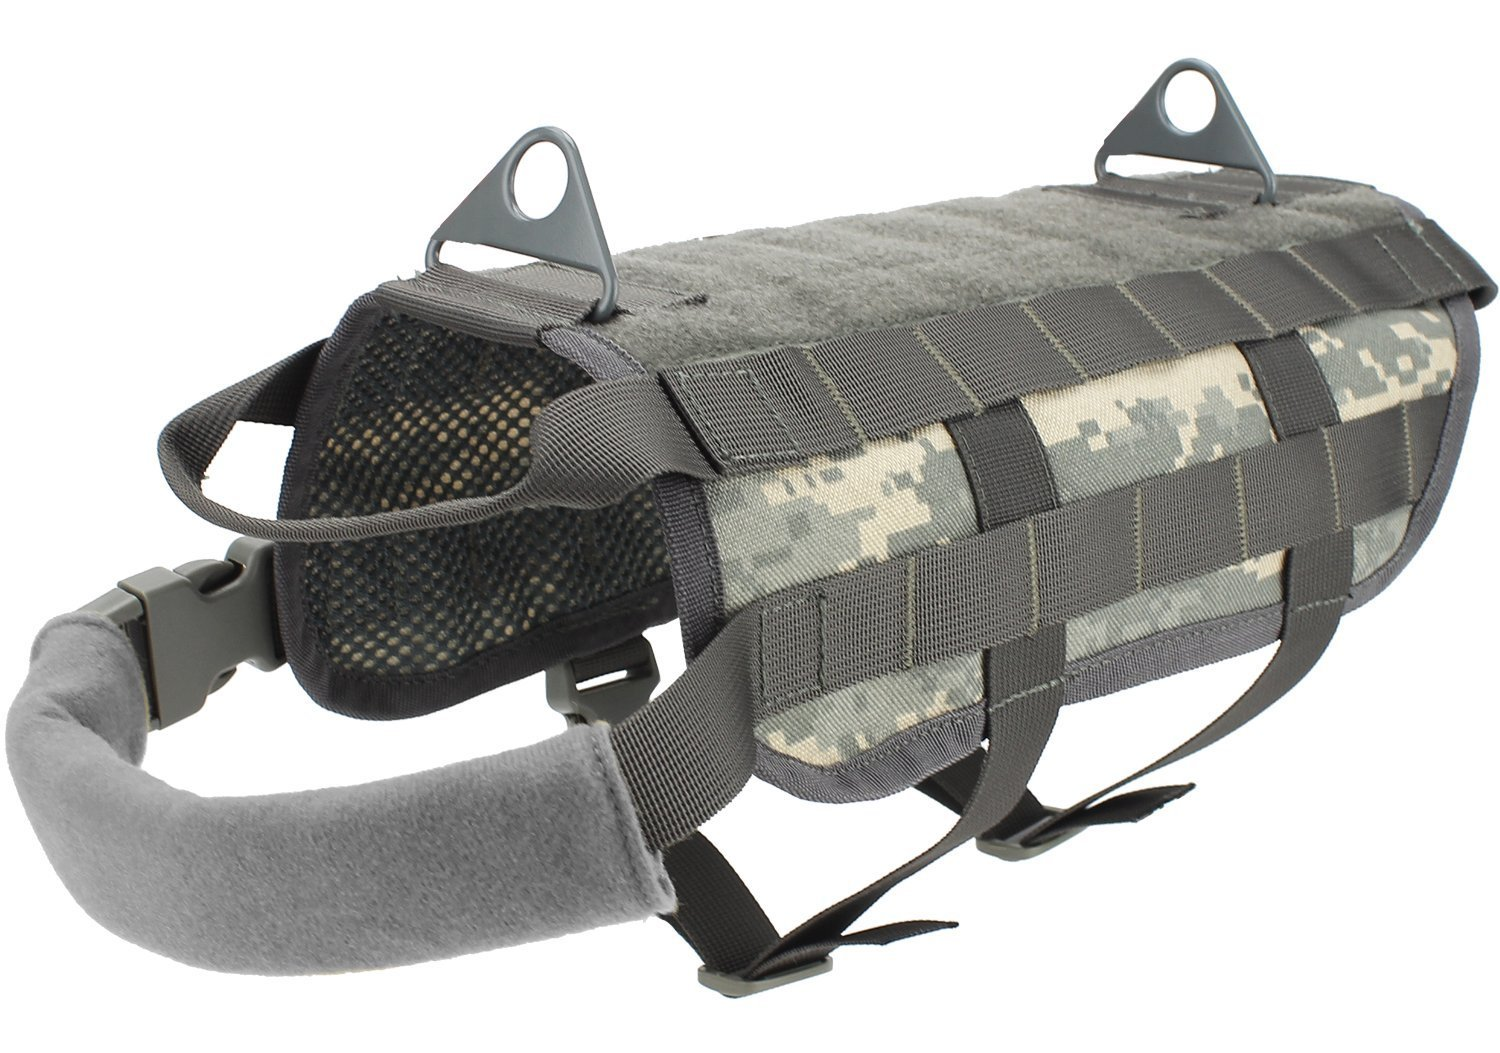 LOOGU Military Tactical Pet Dog Puppy Molle Vest Harnesses 1000D Nylon Anti Anxiety and Stress Relief Calming Vest for Dogs